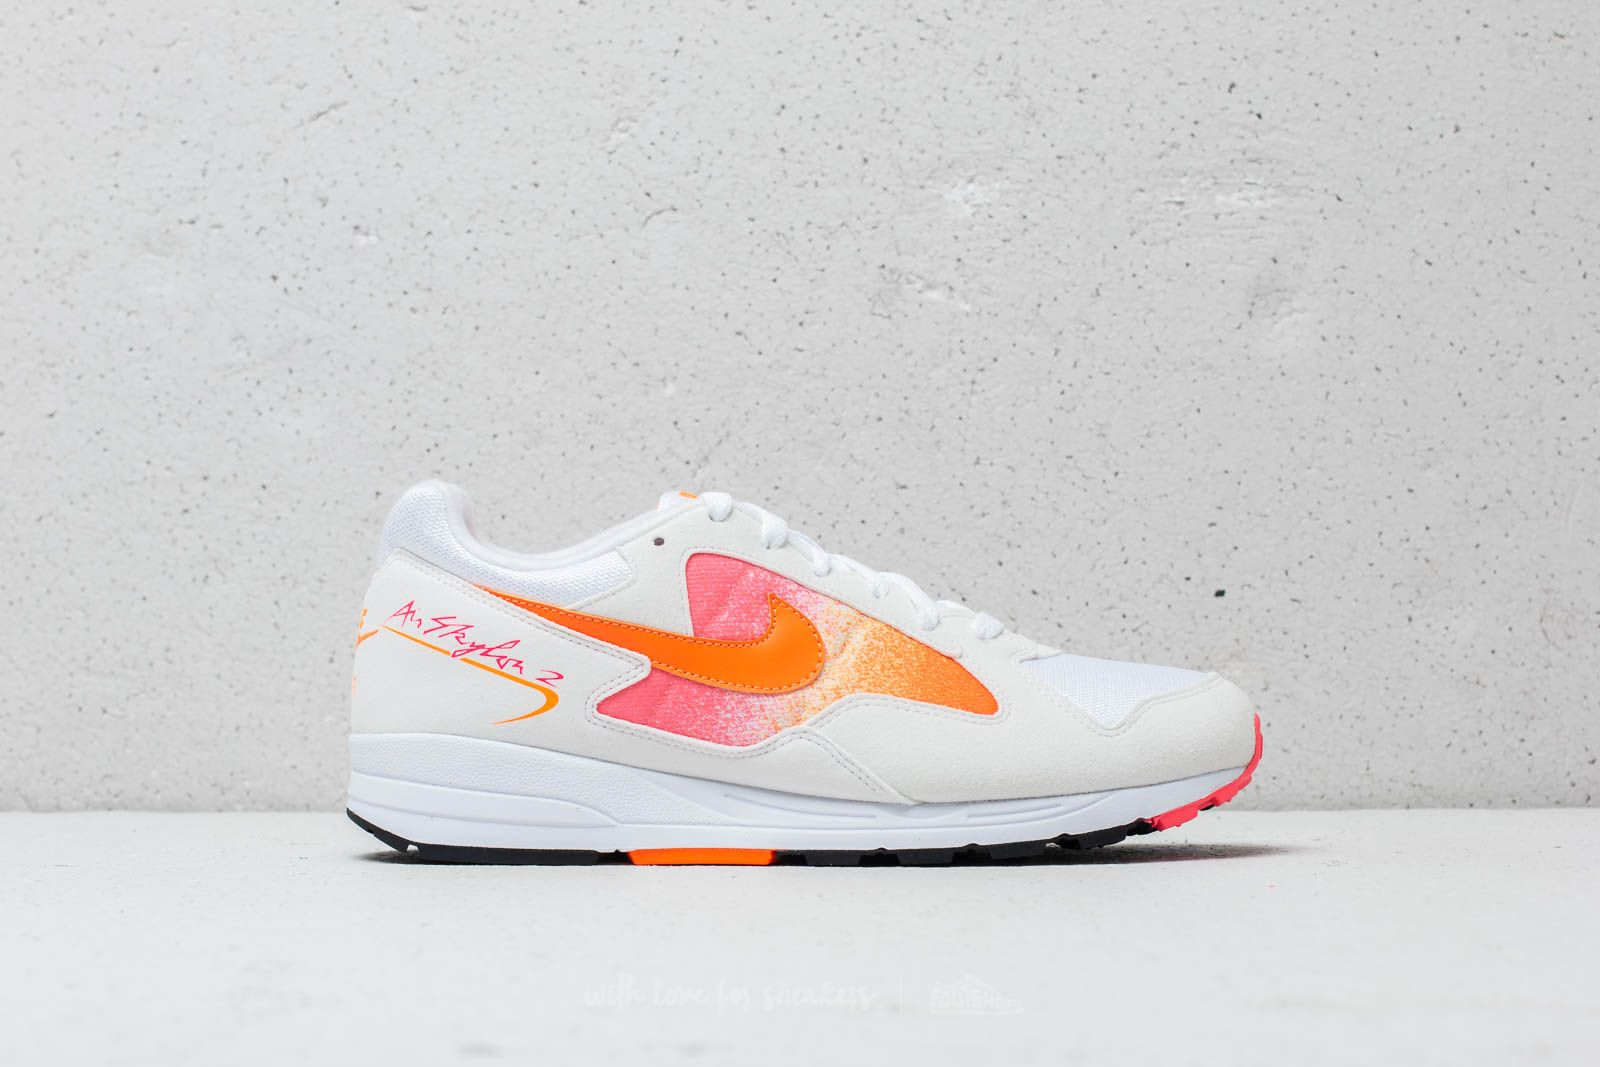 a9a617b0eee9 Nike Air Skylon II White  Total Orange-Racer Pink at a great price 99